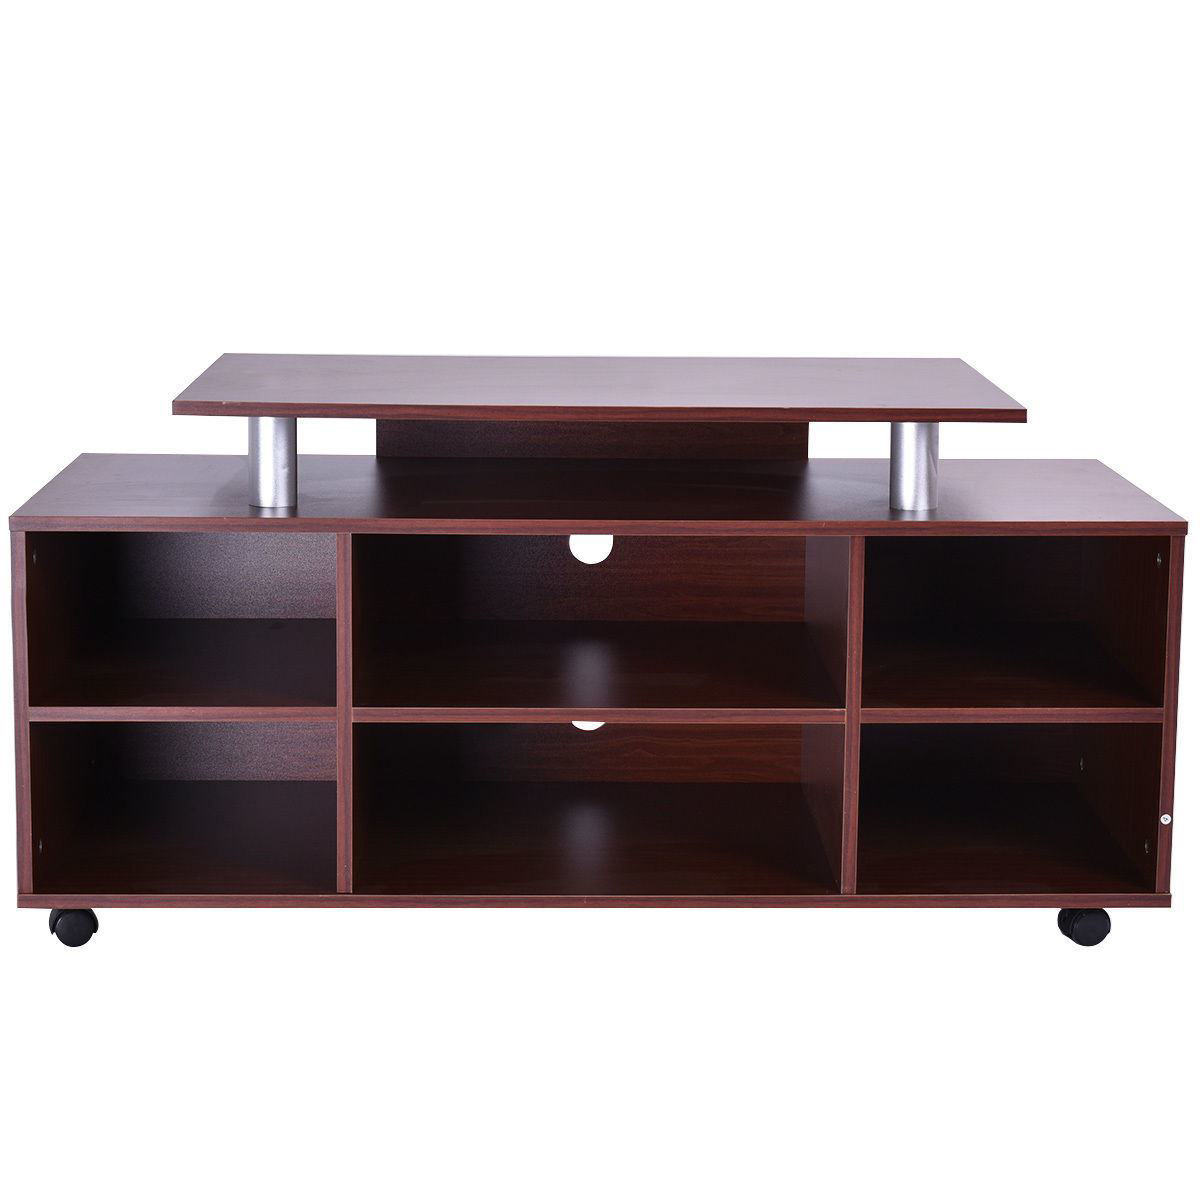 Picture of TV Stand Entertainment Center Media Storage Cabinet